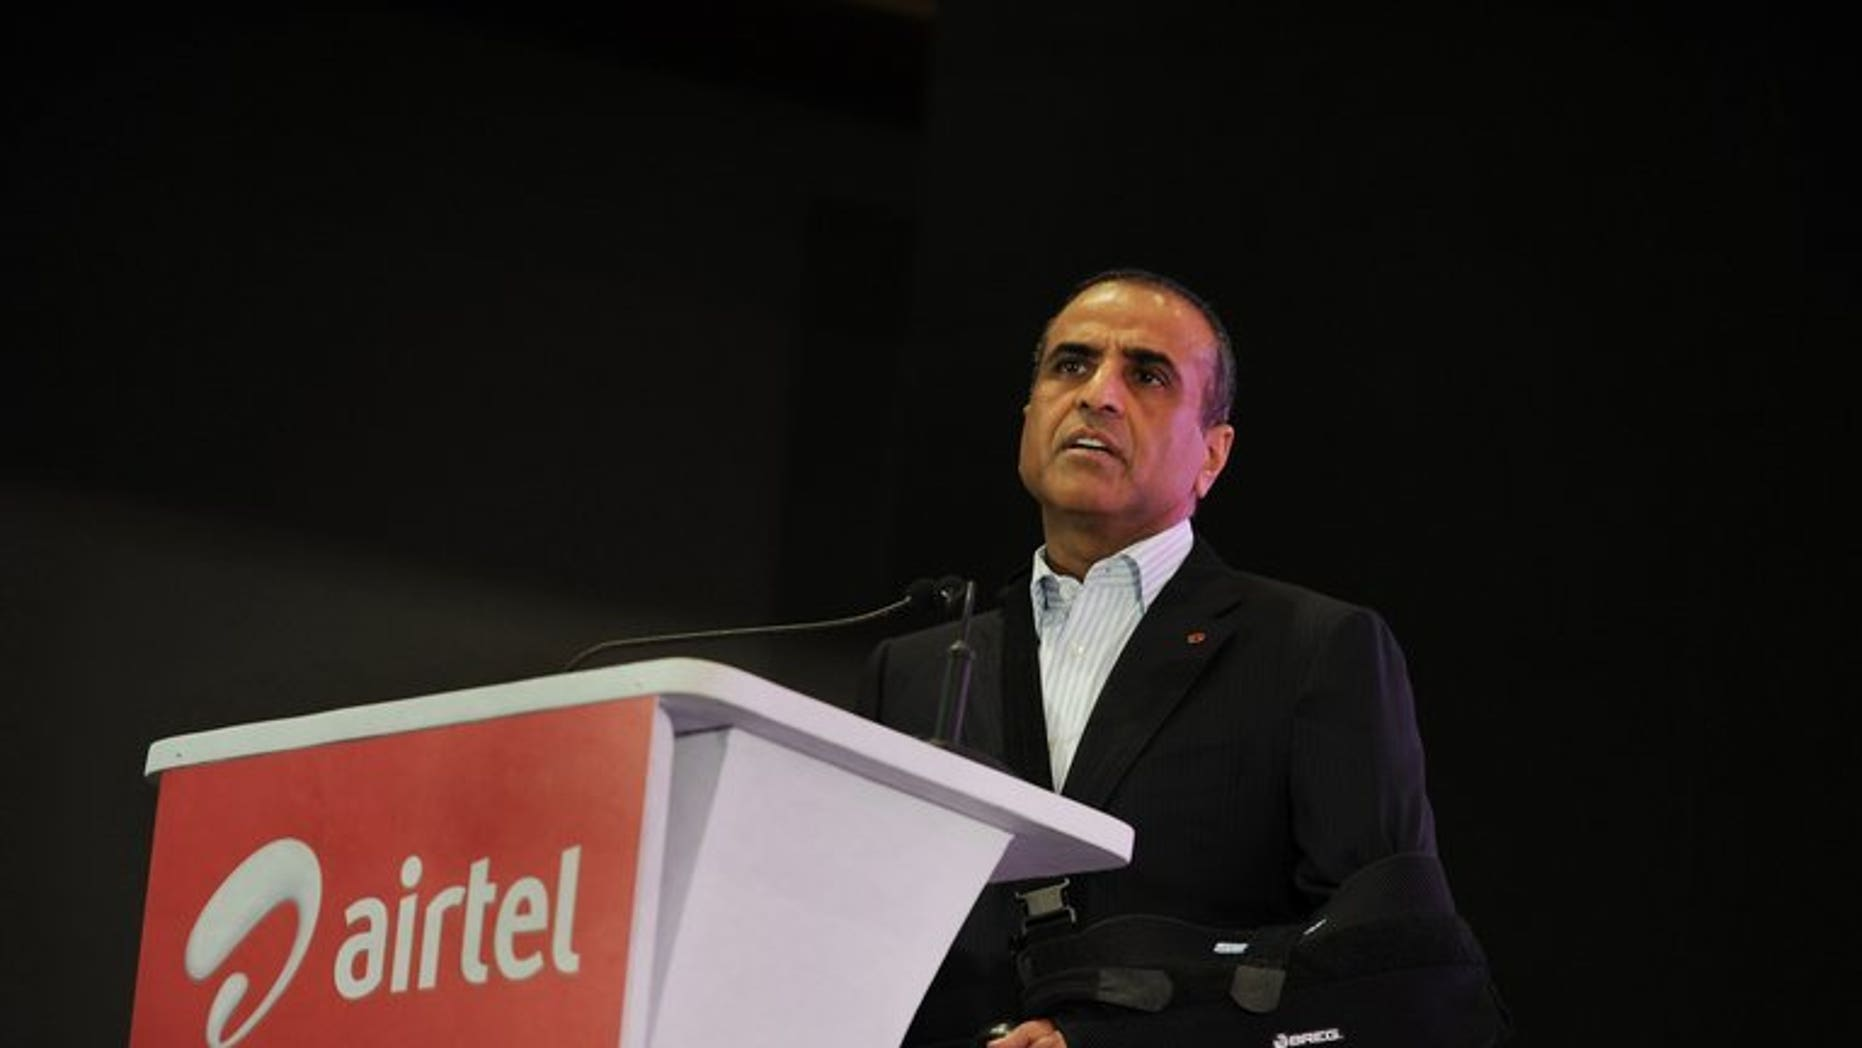 Bharti Airtel chairman Sunil Mittal gives a speech in Kolkata lastyear. India's top mobile firm has reported its 14th straight quarterly profit fall, hit by foreign exchange losses, but its shares soared on hopes of better performance as tariff wars waned.